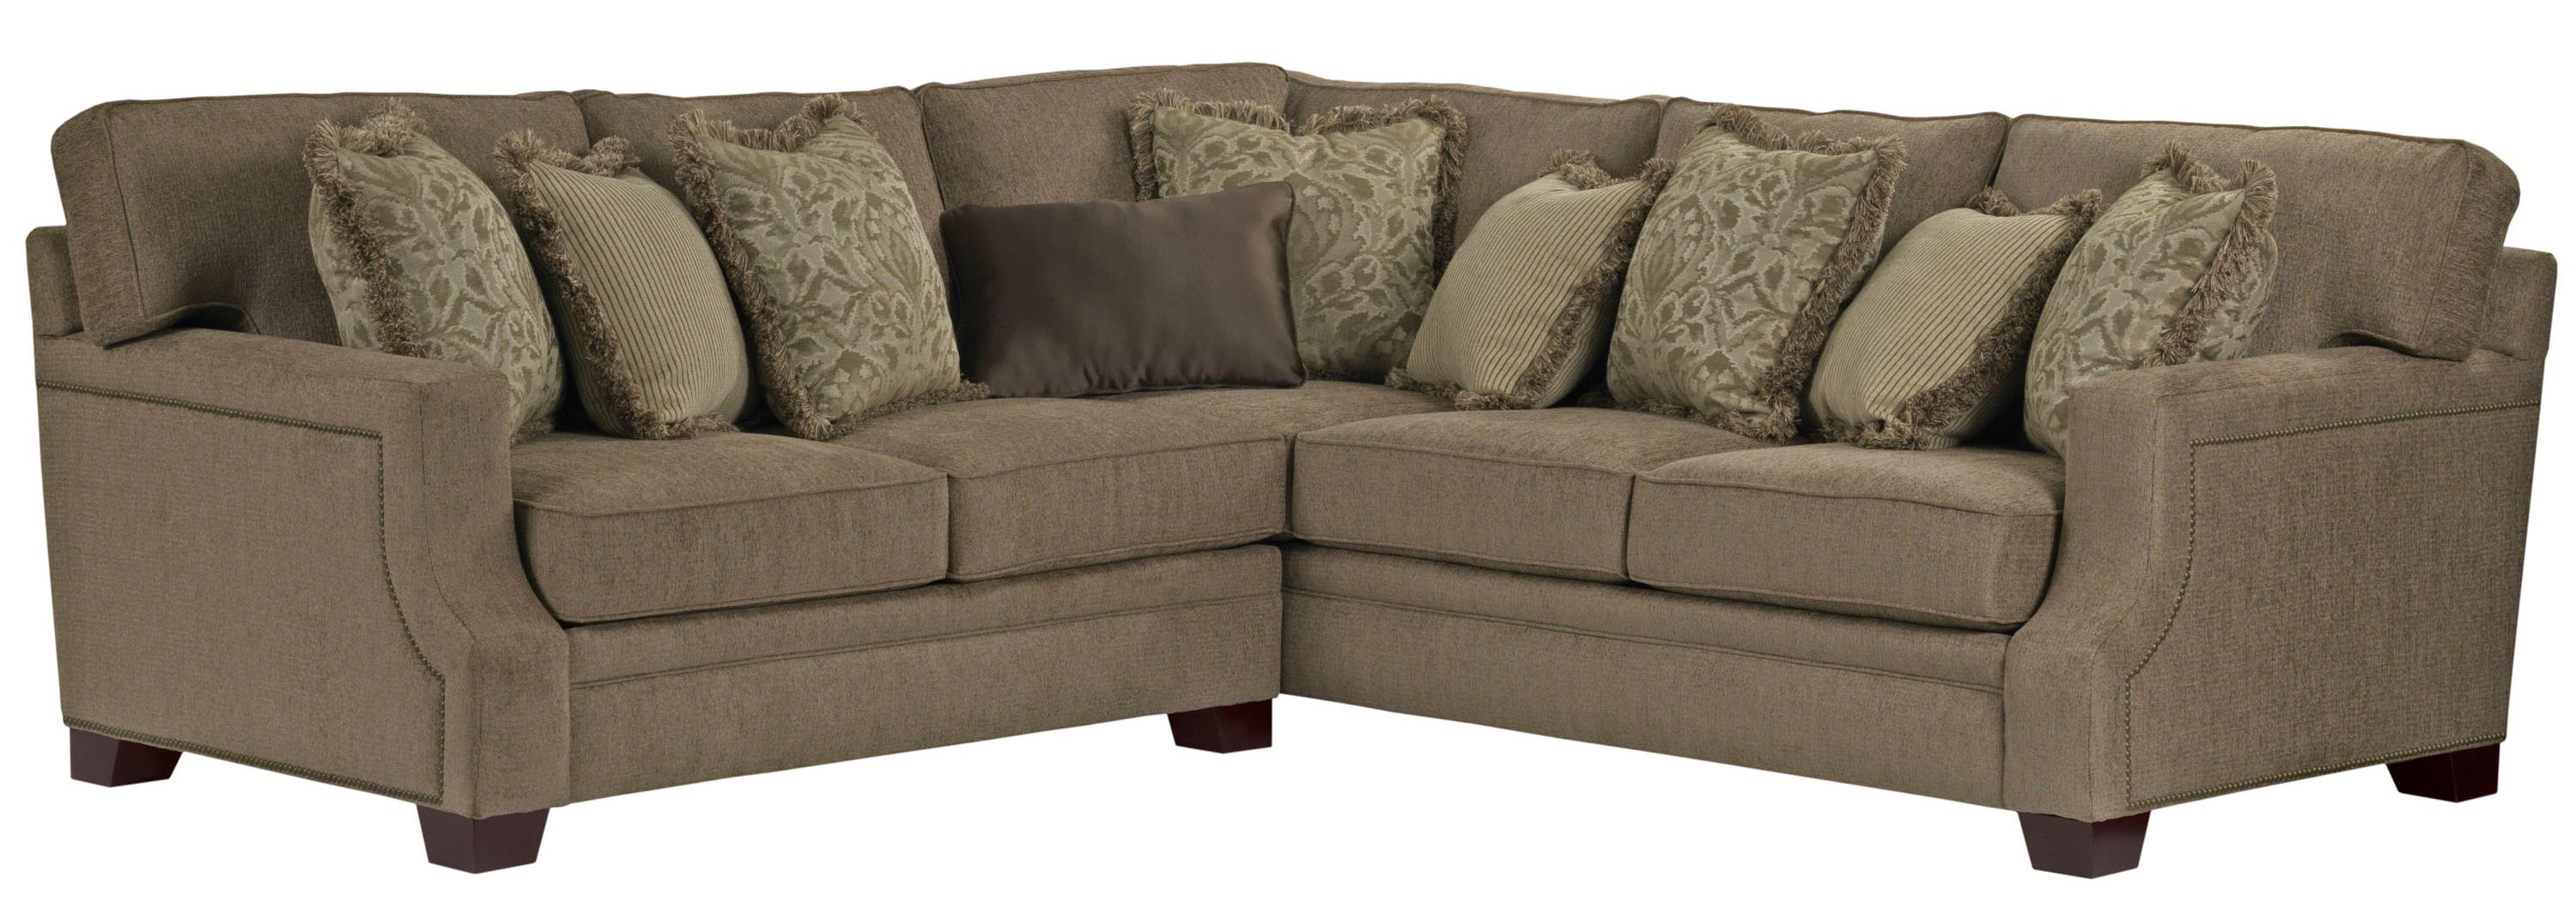 Broyhill Furniture Kayley 2 Piece Corner Sectional Ahfa Sofa Inside Broyhill Sectional Sofas (Image 3 of 15)